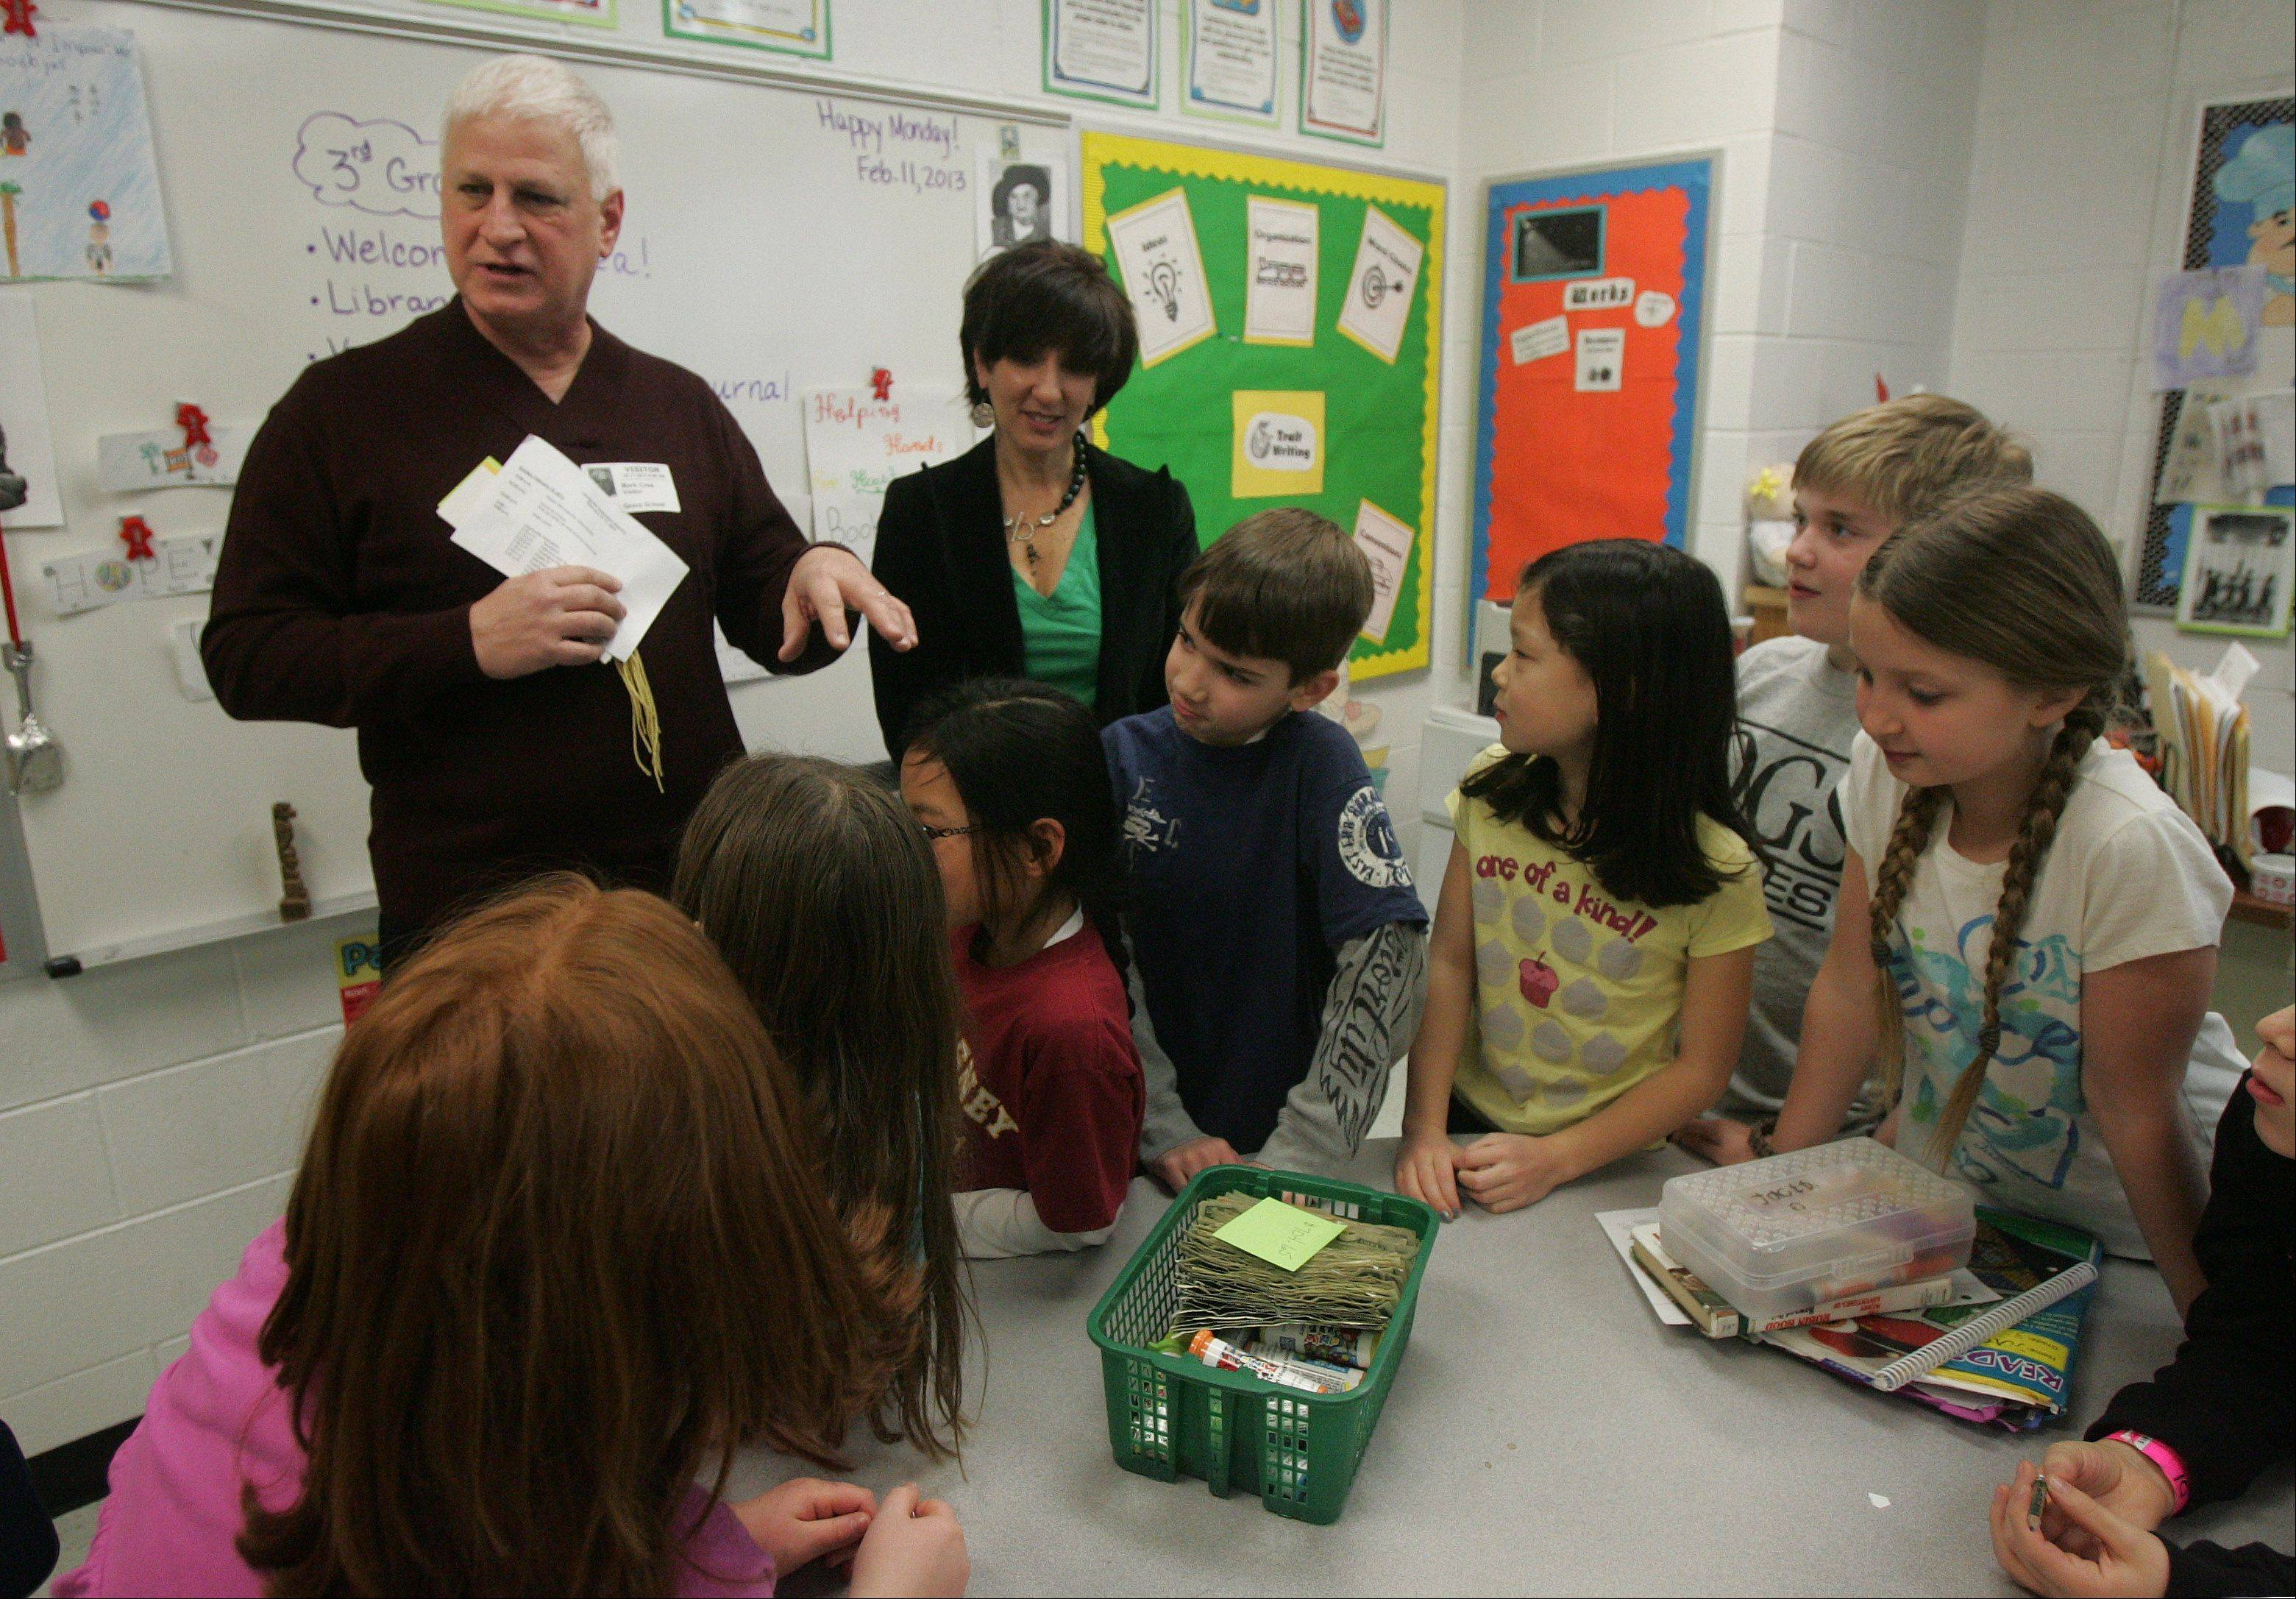 Mark Crea, CEO of Feed My Starving Children, thanks students during a visit to Maria Luce's third-grade class Monday at Oak Grove School in Green Oaks. The students made and sold more than 2,000 bookmarks and raised $700 for the organization.